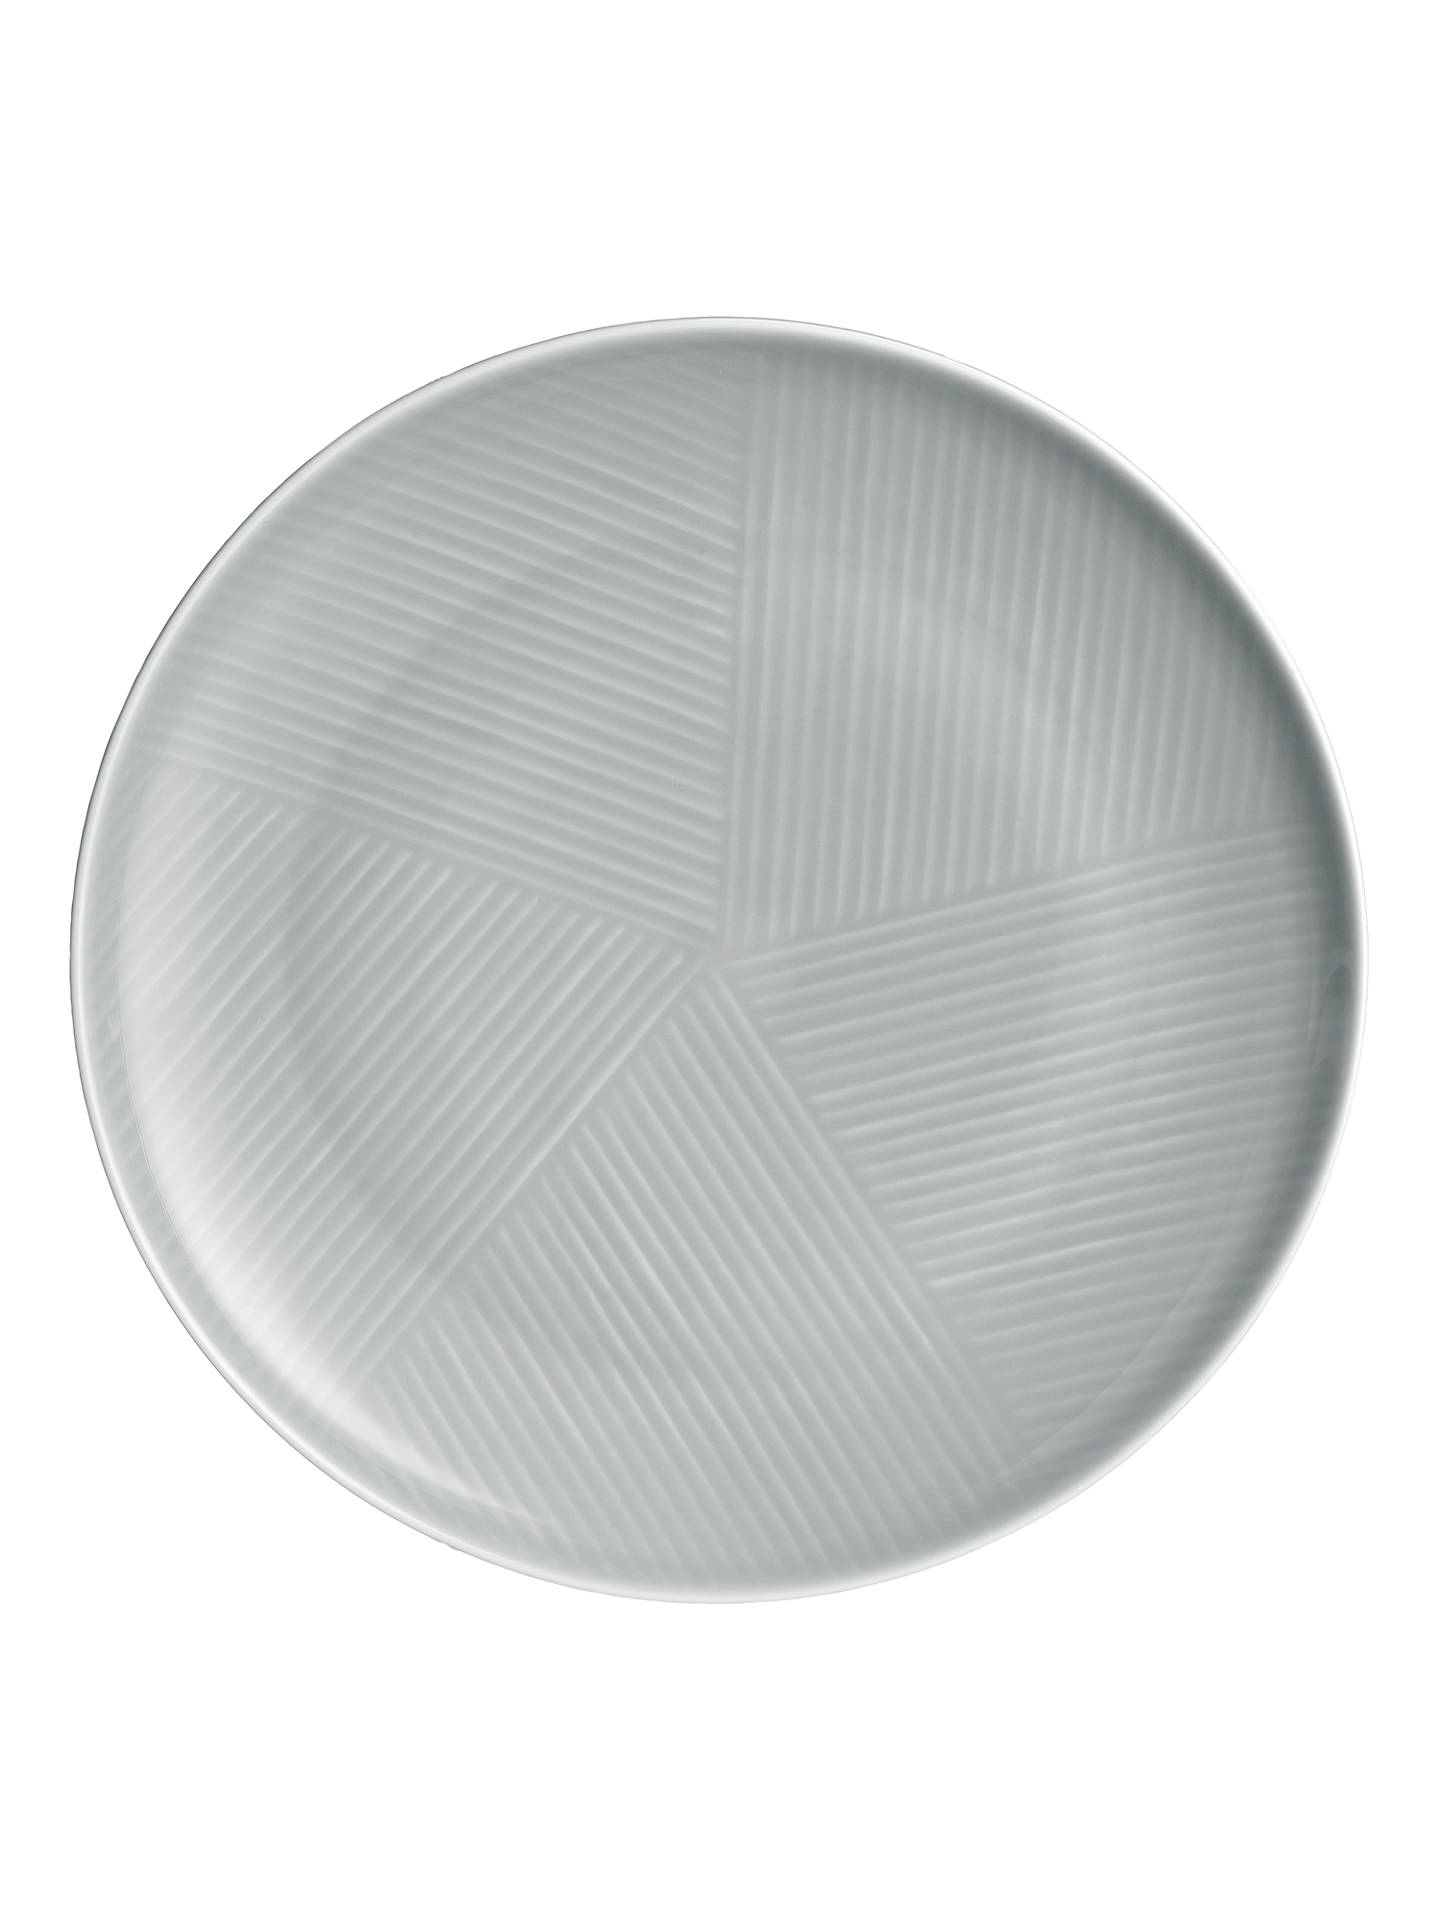 Buy Design Project by John Lewis No.098 Coupe 23cm Plate, Grey Online at johnlewis.com